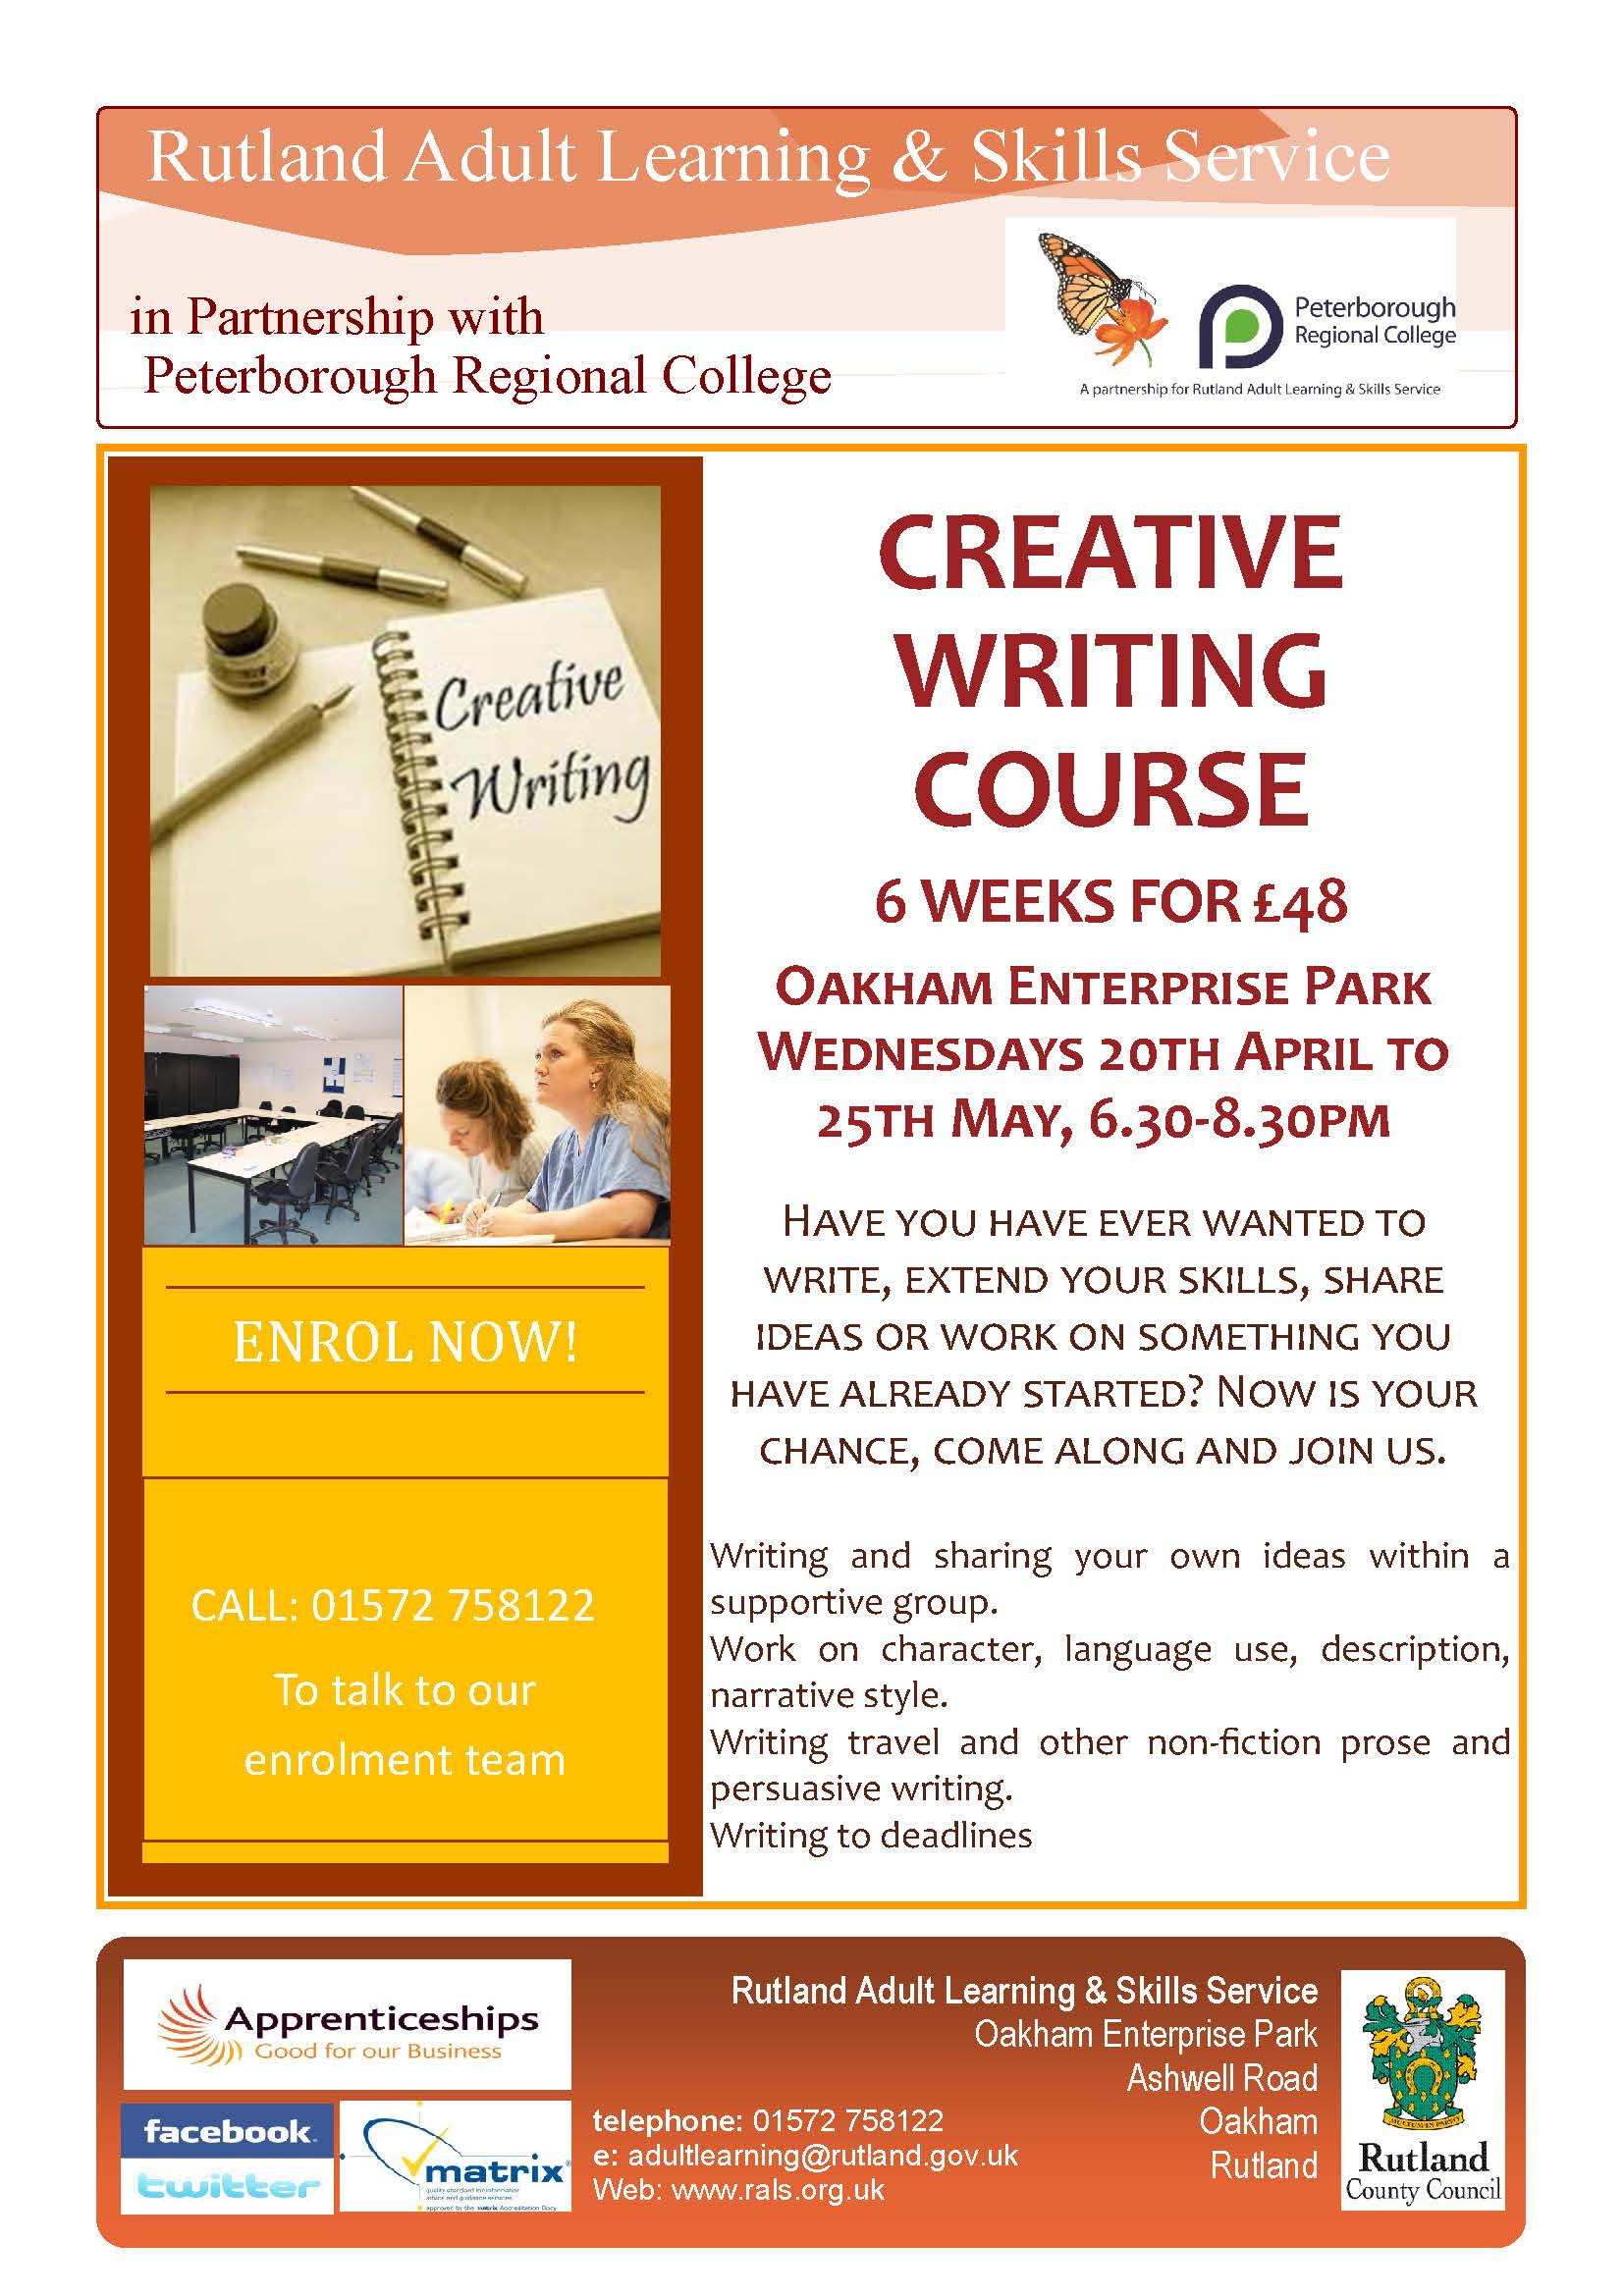 creative writing for high school syllabus Write fiction by learning and using the elements of creative writing: plot, character development, dialogue, description, scene high school programs provide flexibility syllabus write fiction by learning and using the elements of creative writing.